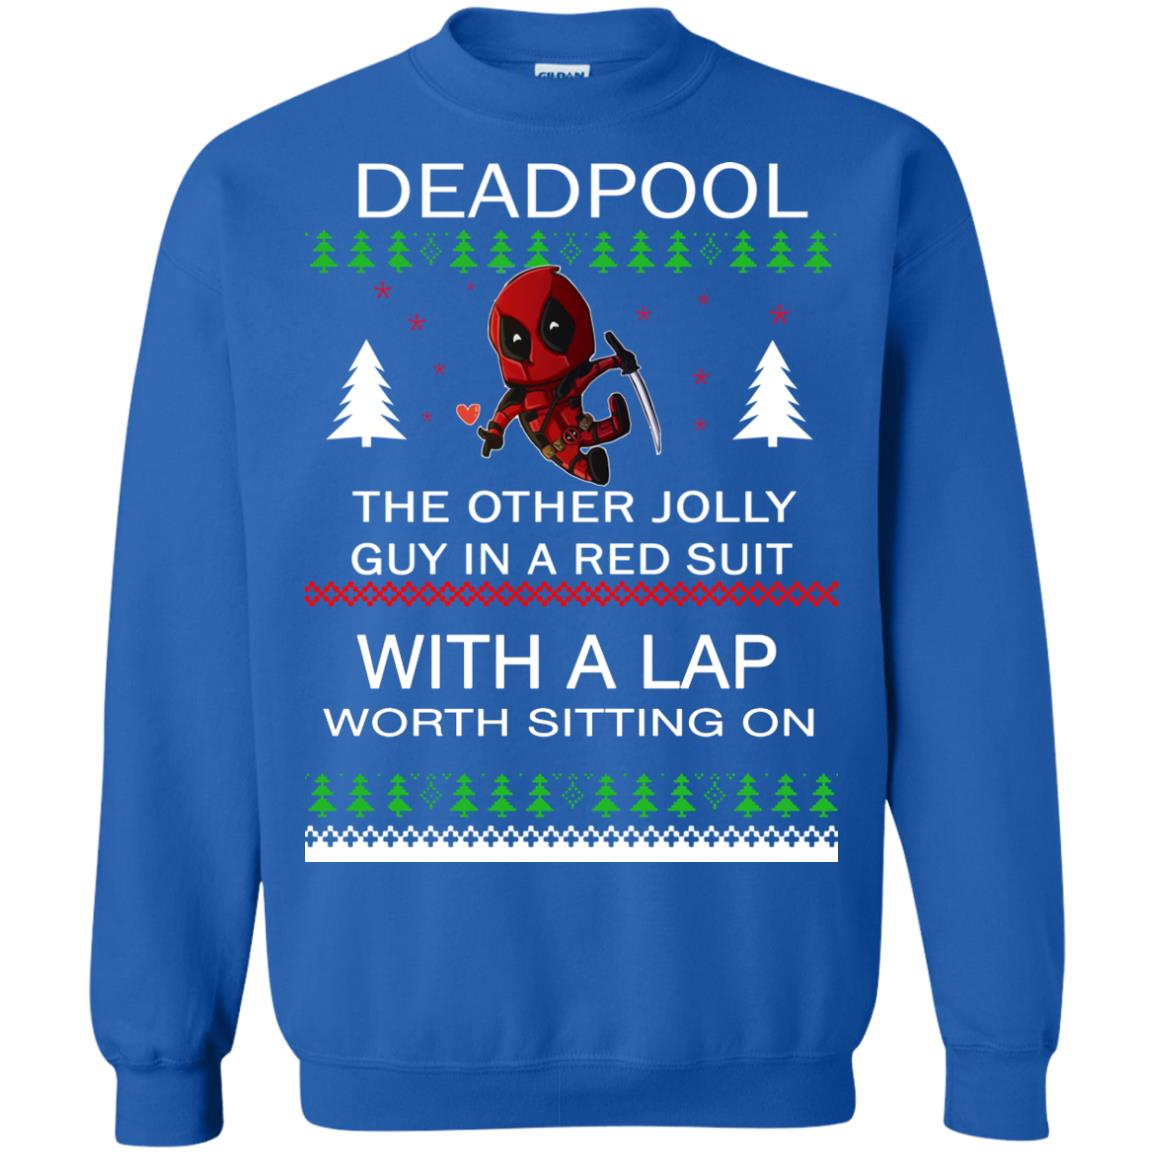 image 2839 - Deadpool The only jolly guy in a red suit with a Lap Christmas Sweater, Ugly Sweatshirts